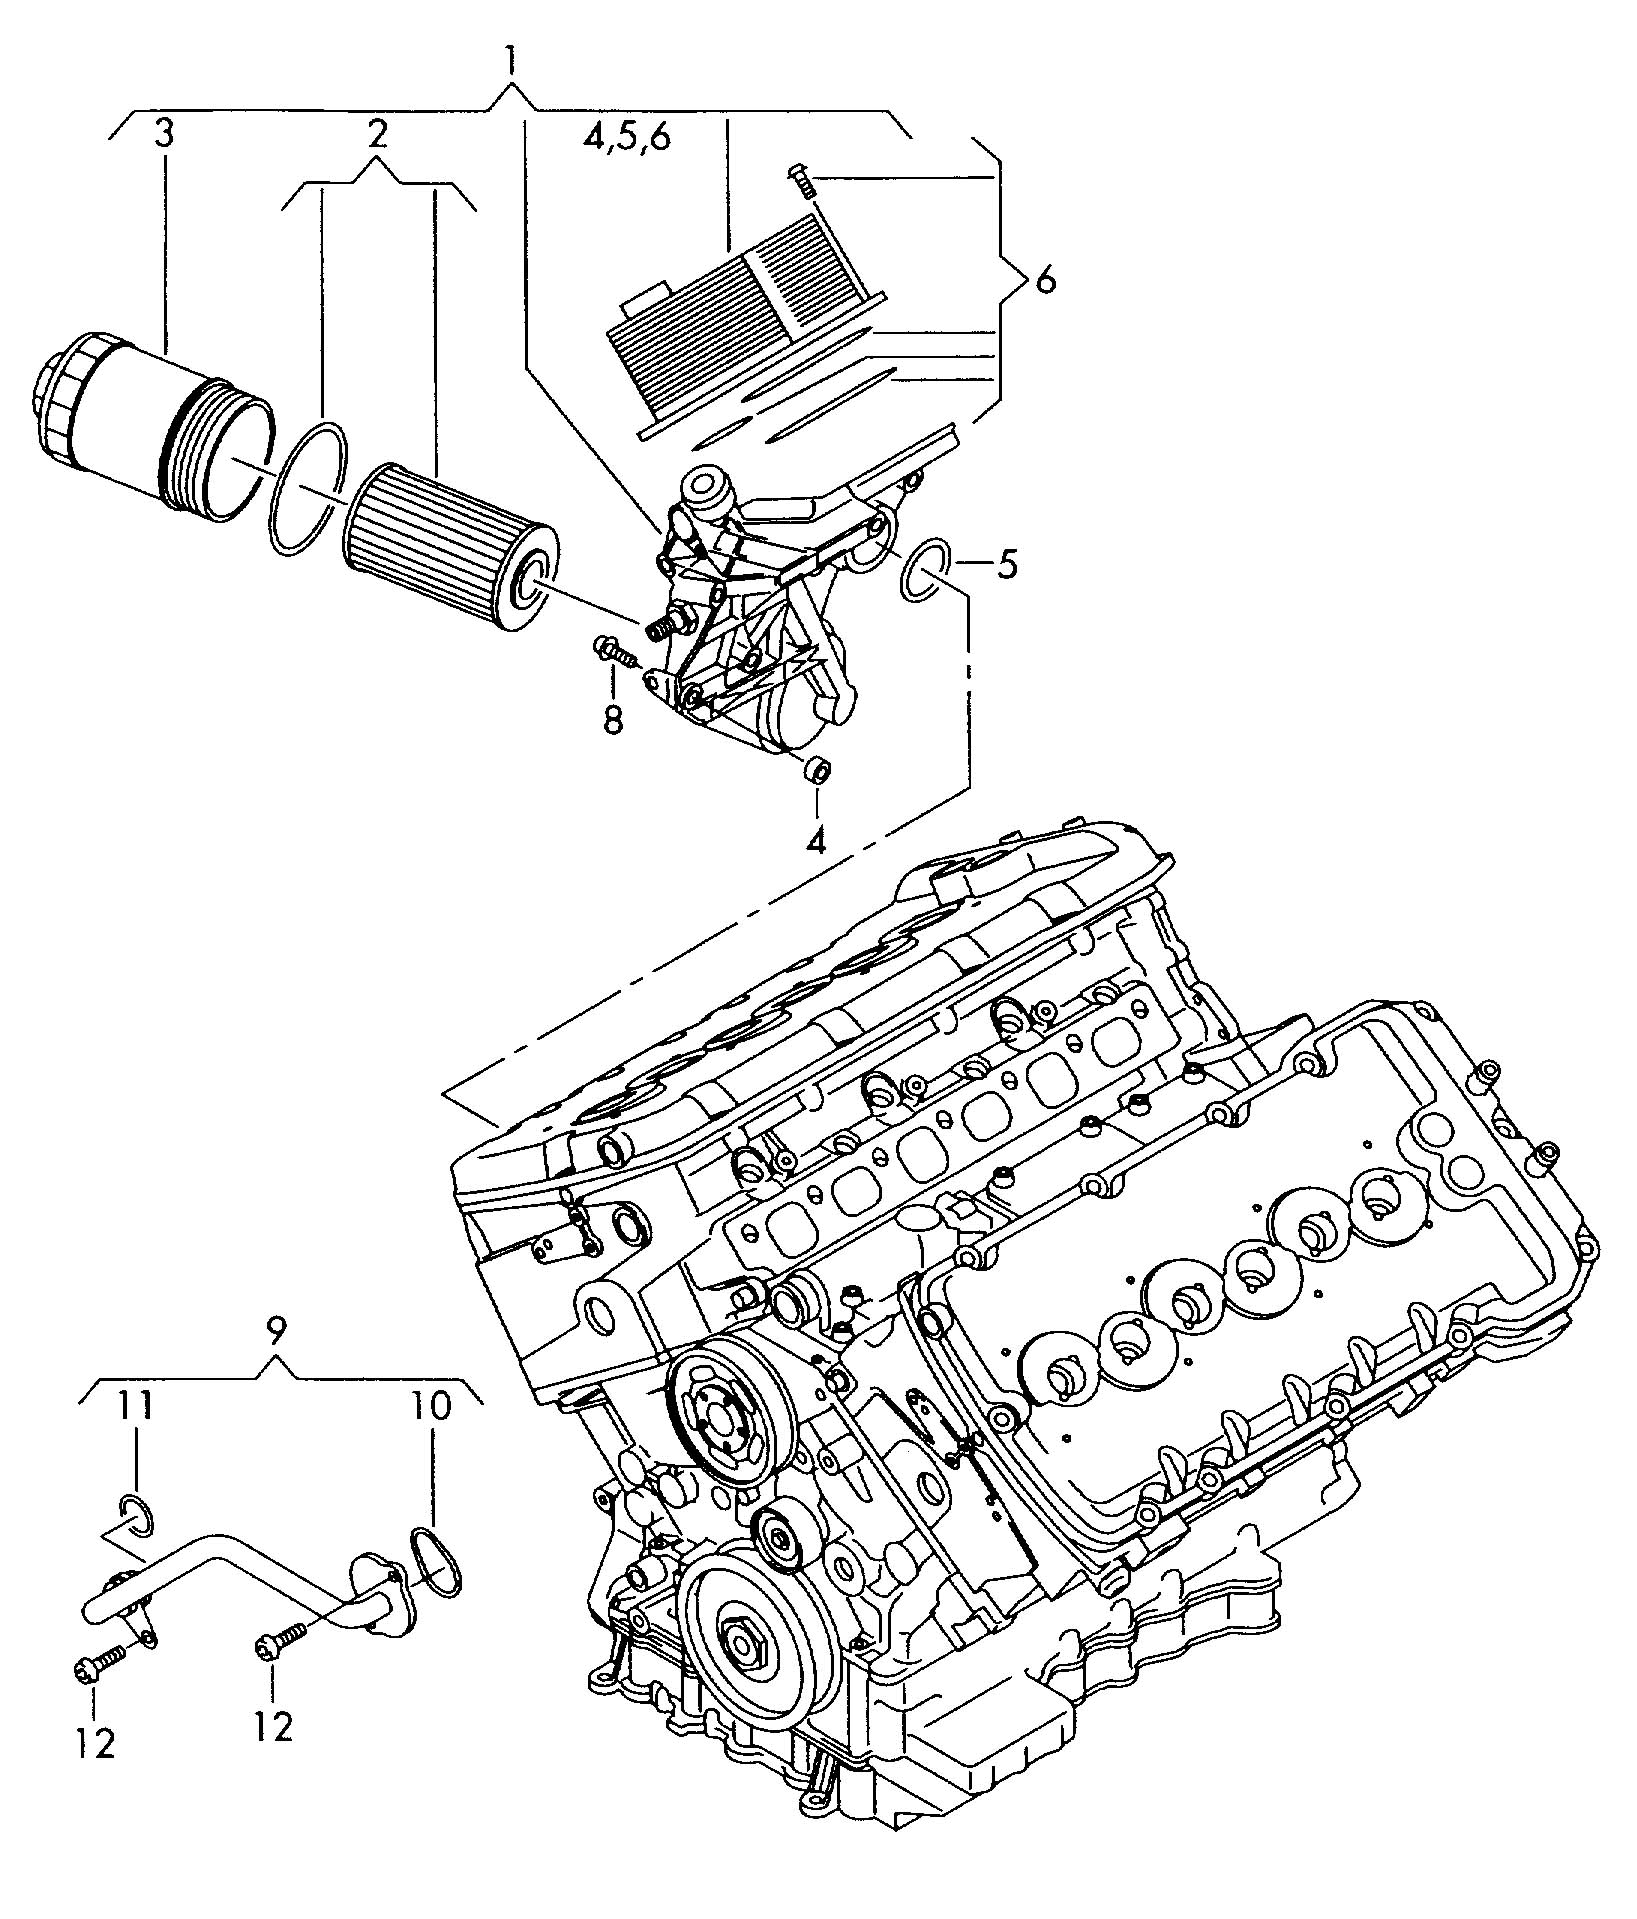 Grounding wire location help please 10069 also 1994 nissan sentra belt diagram as well mazda 6